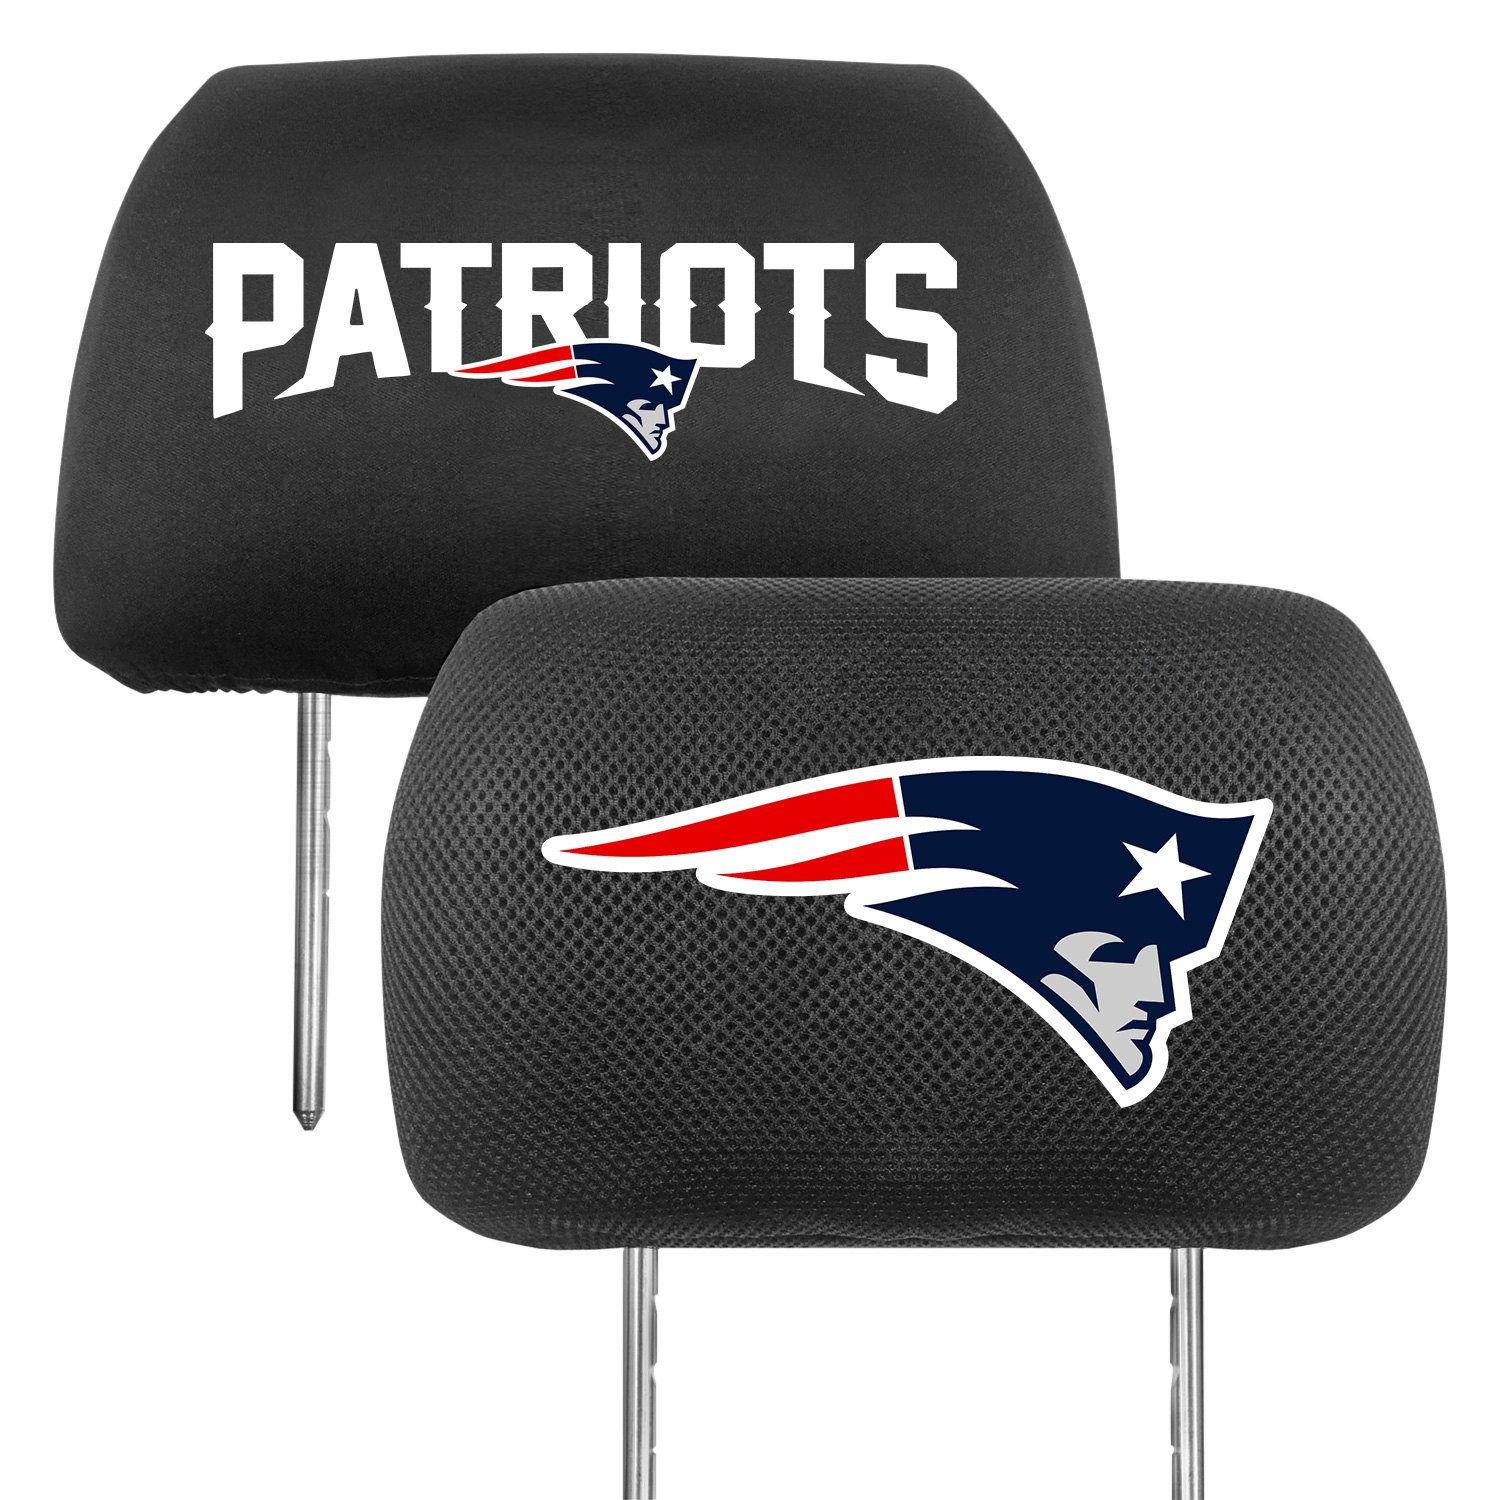 Fanmats 174 12506 Headrest Covers With New England Patriots